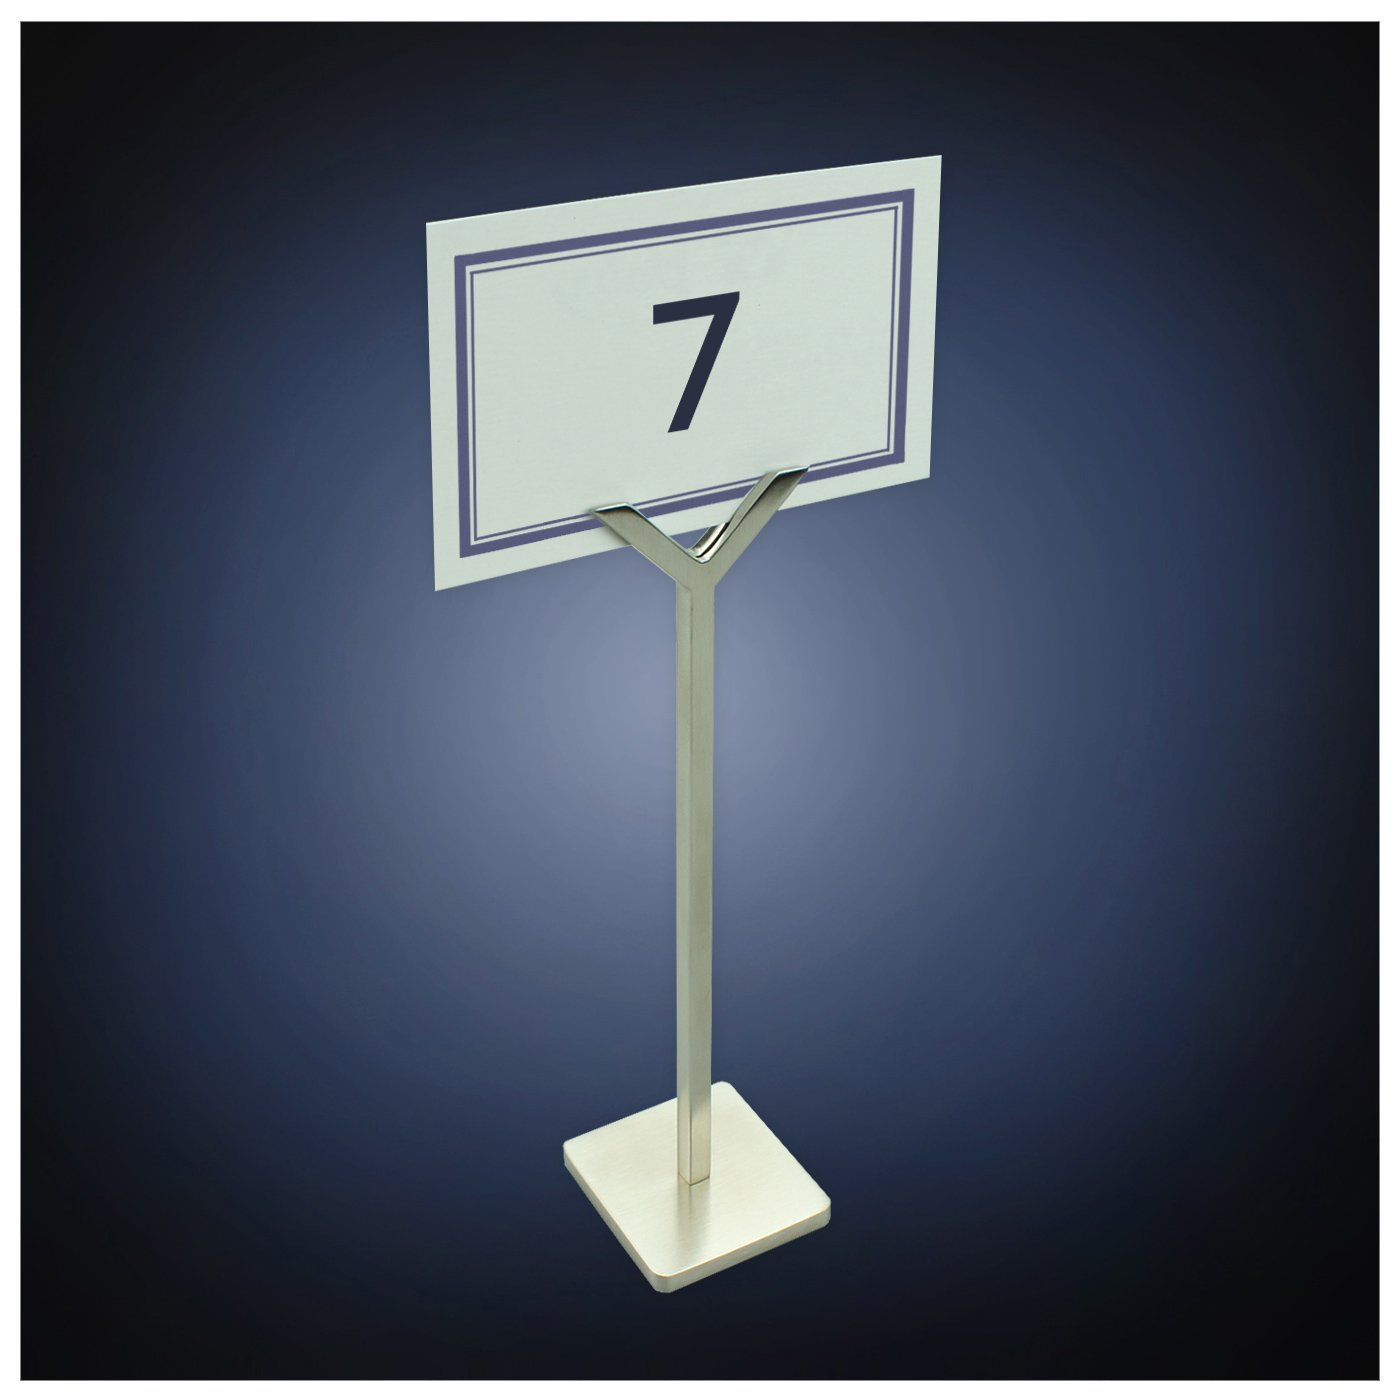 ArtsOnDesk Modern Art Place Card Holder St212 Stainless Steel Satin Finish Patent Applied for-Table Card Holder Menu Memo Recipe Tabletop Number Sign Holder Display Stand Gift